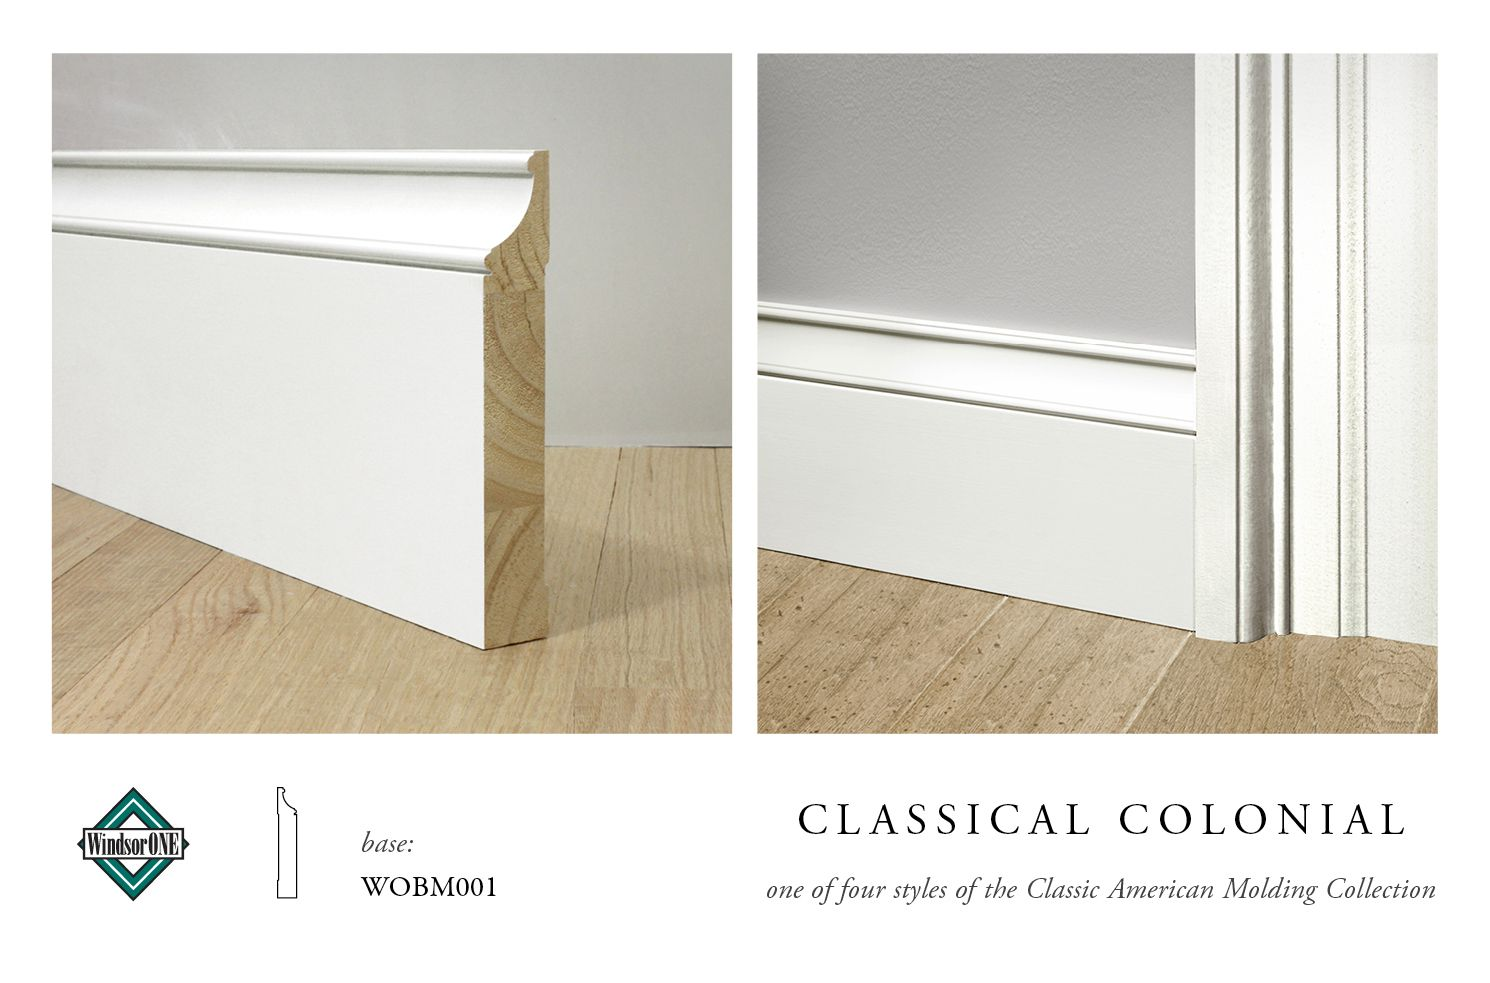 Classical Colonial Moldings 18th Century Style Windsorone Moldings And Trim Base Moulding Baseboard Styles